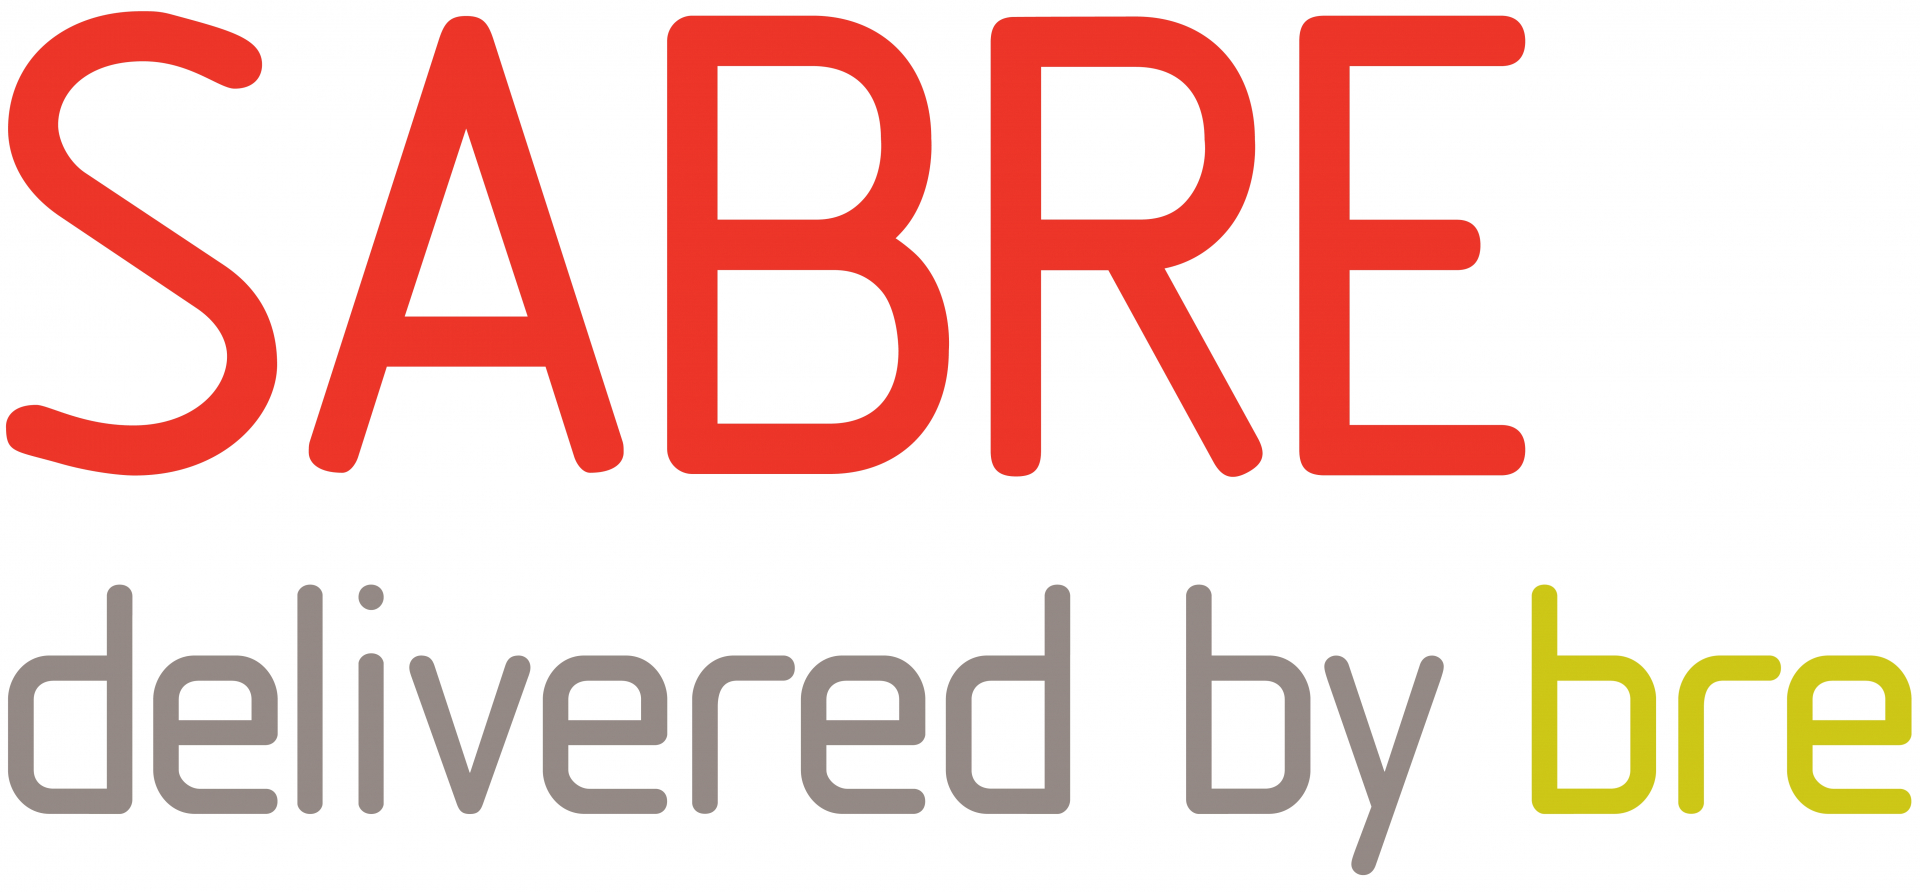 SABRE delivered by bre